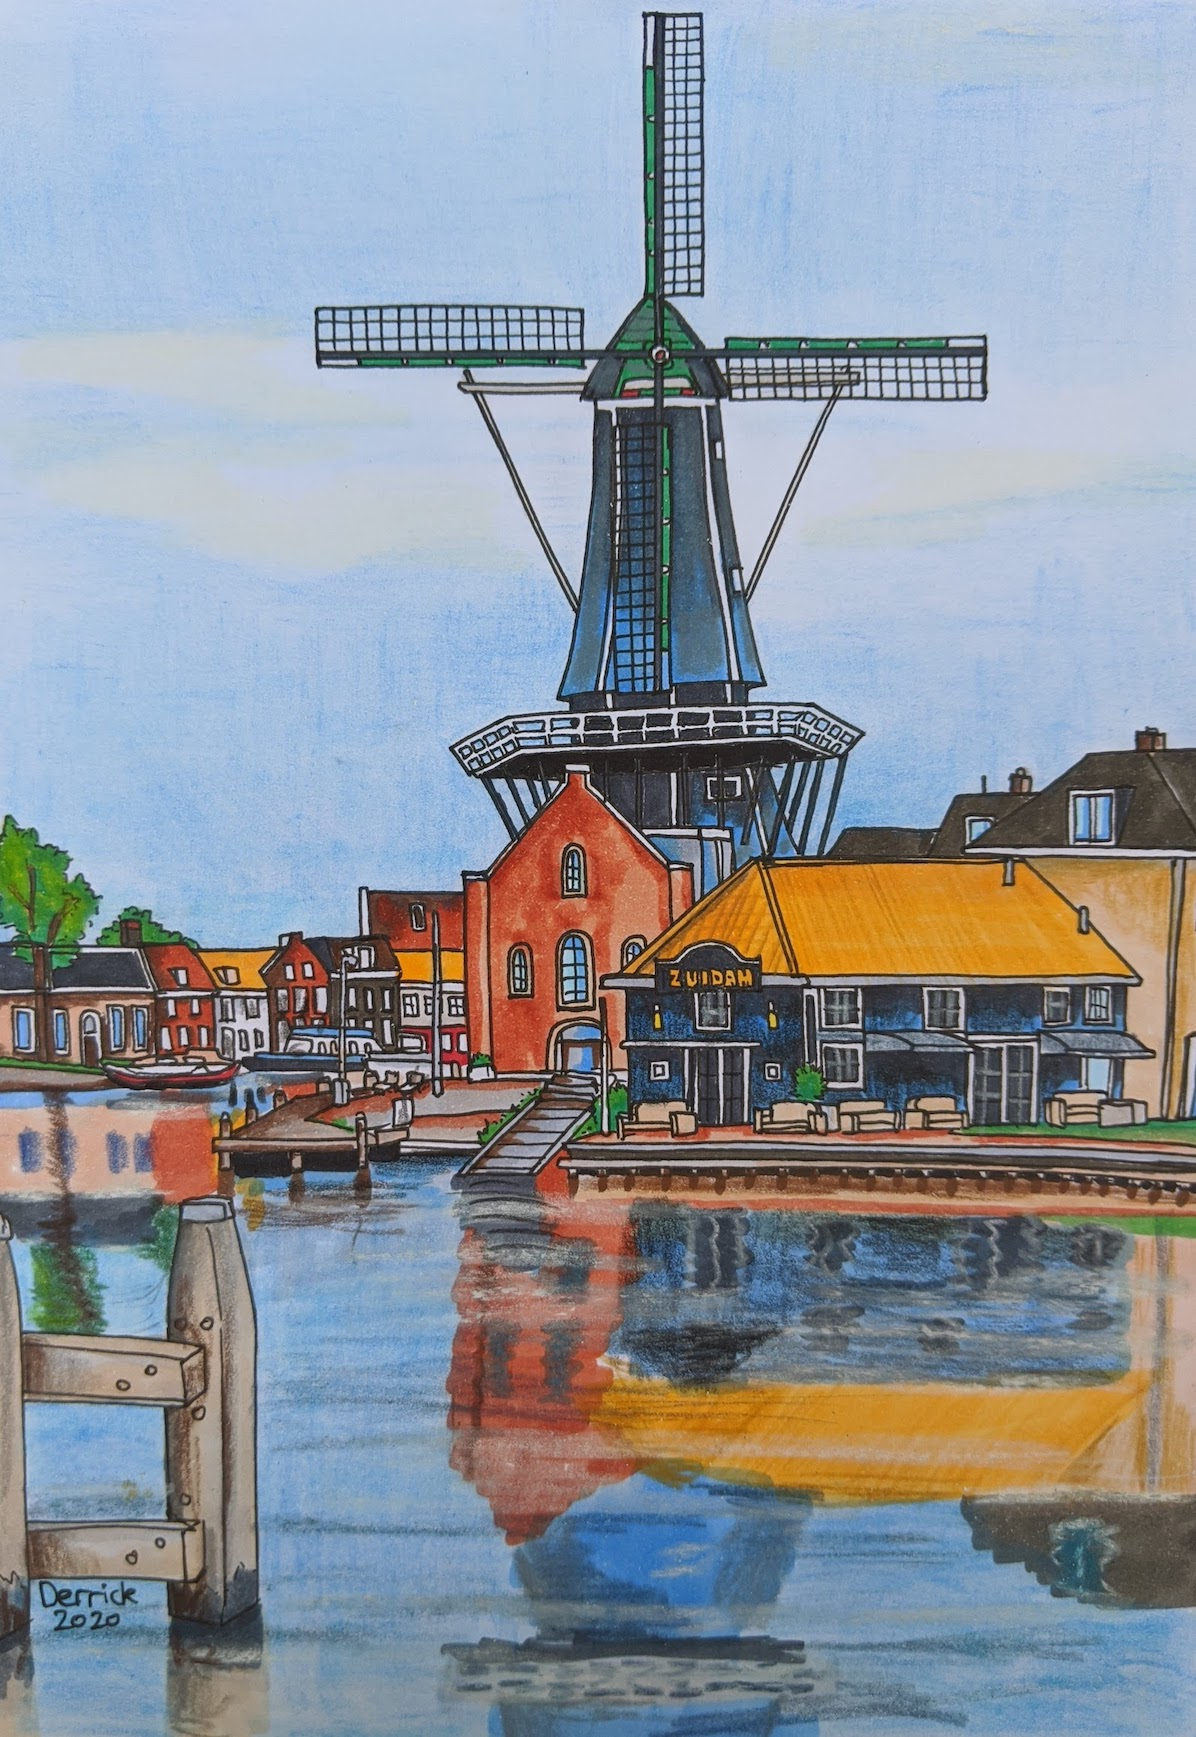 Landscape illustration haarlem windmill reflection on the water spaarne river